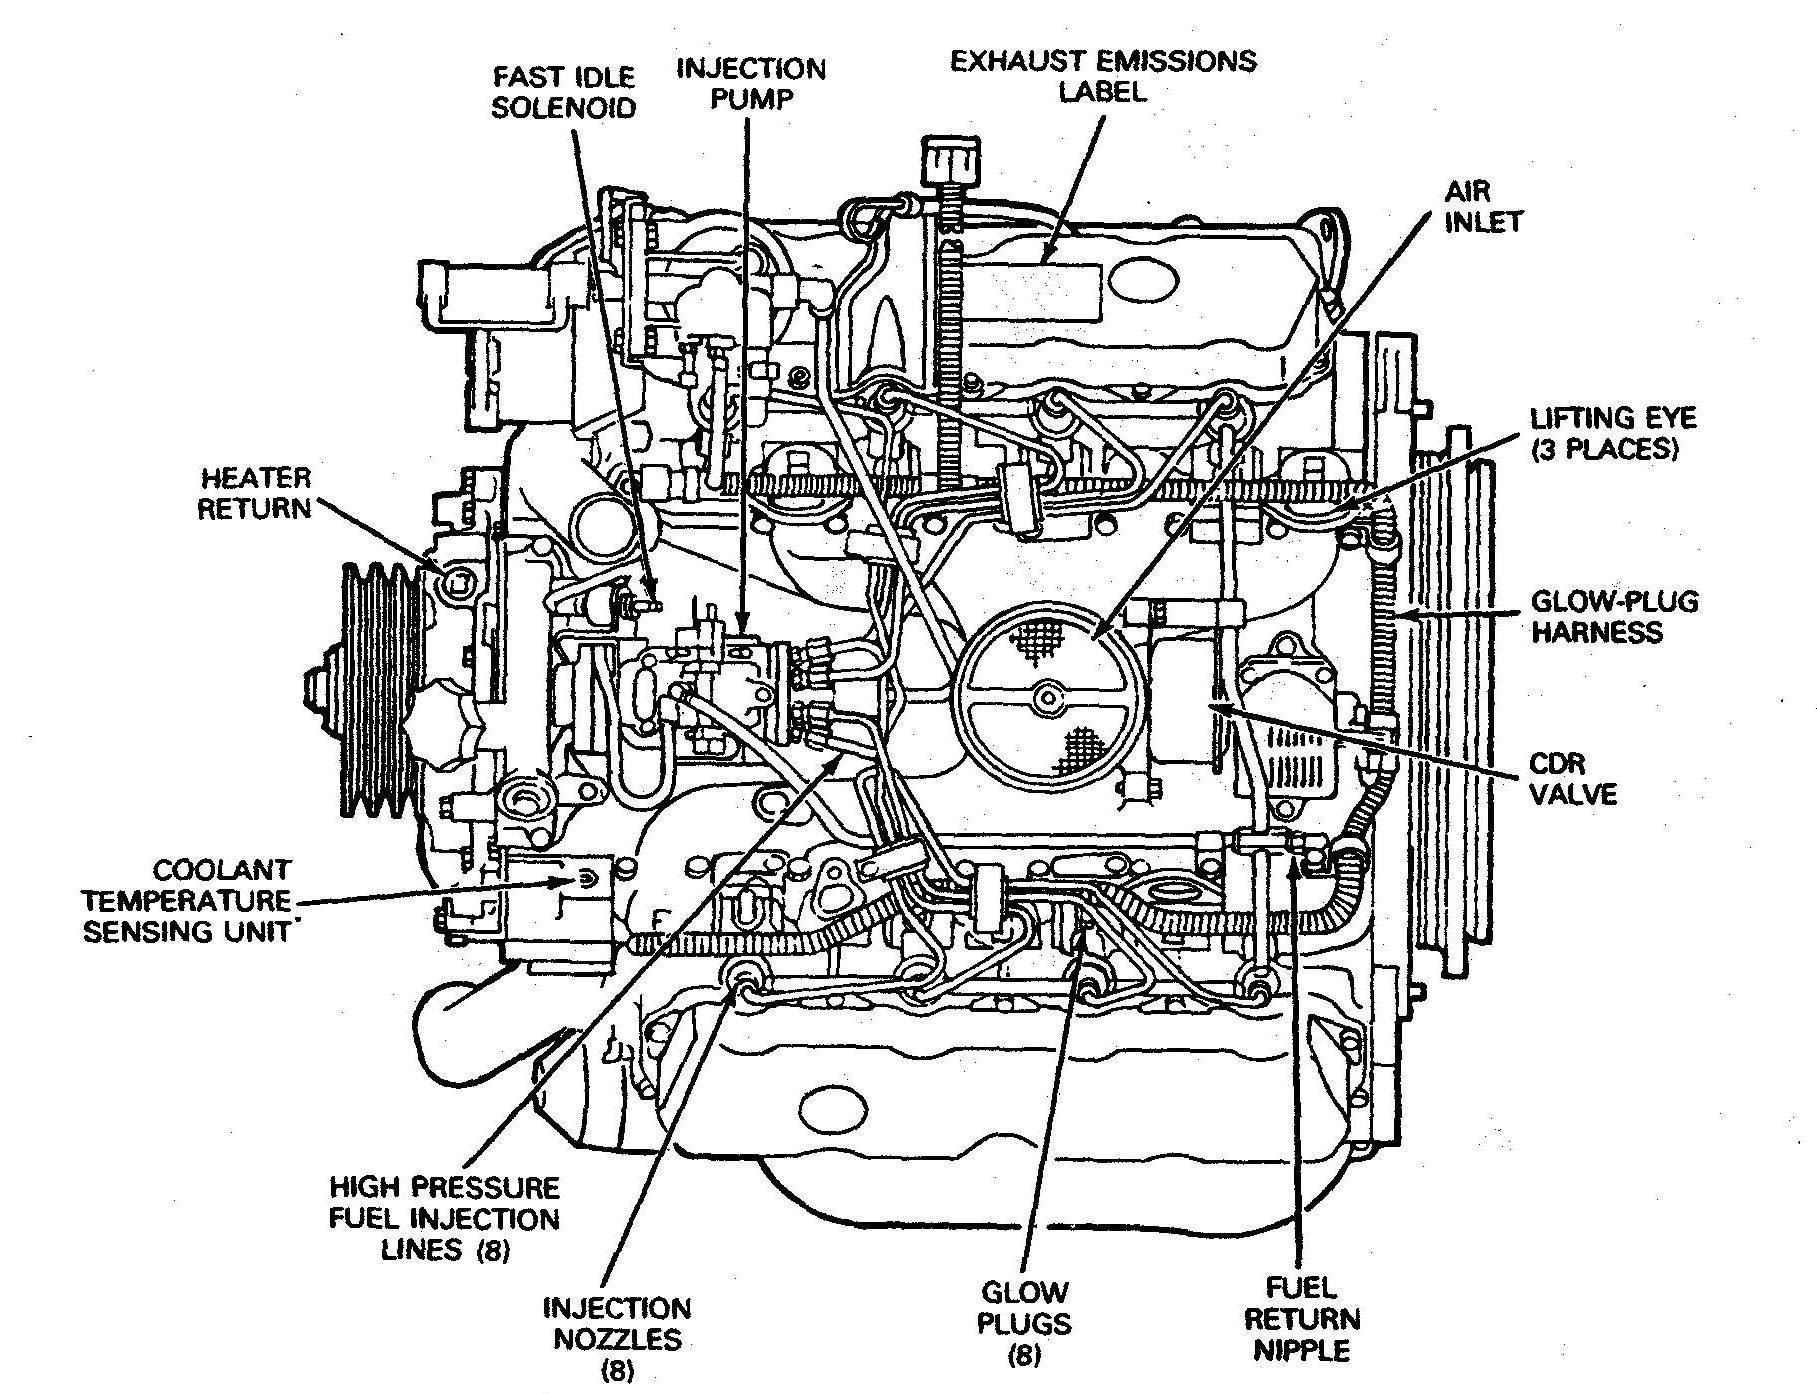 Full Car Engine Diagram Automotive Engine Diagram Wiring Diagrams Of Full Car Engine Diagram